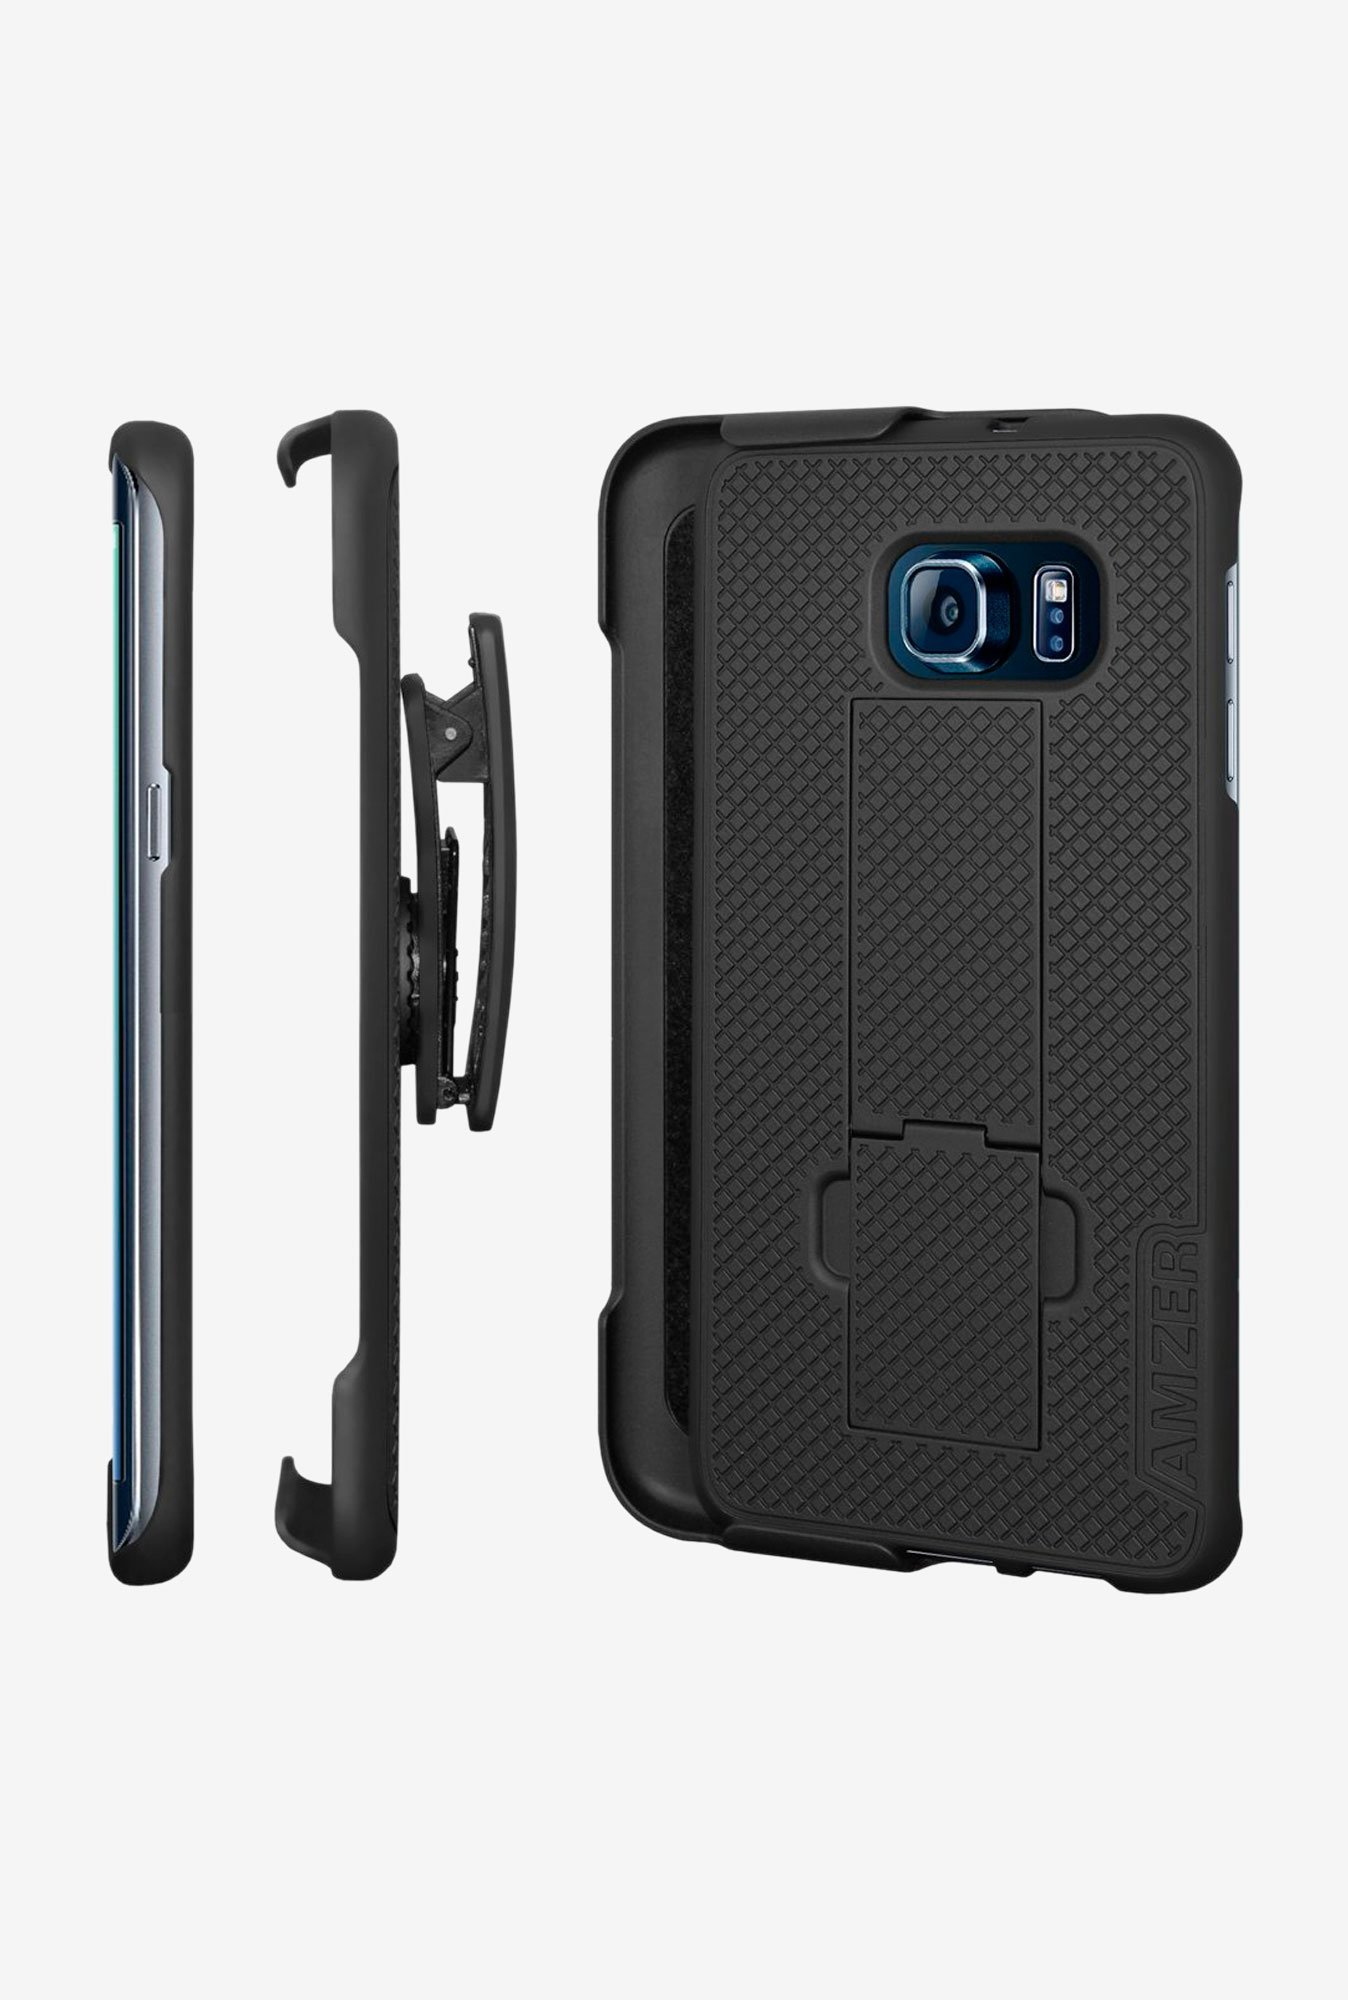 Amzer Shellster Case with Kickstand Black for GalaxyS6 Edge+